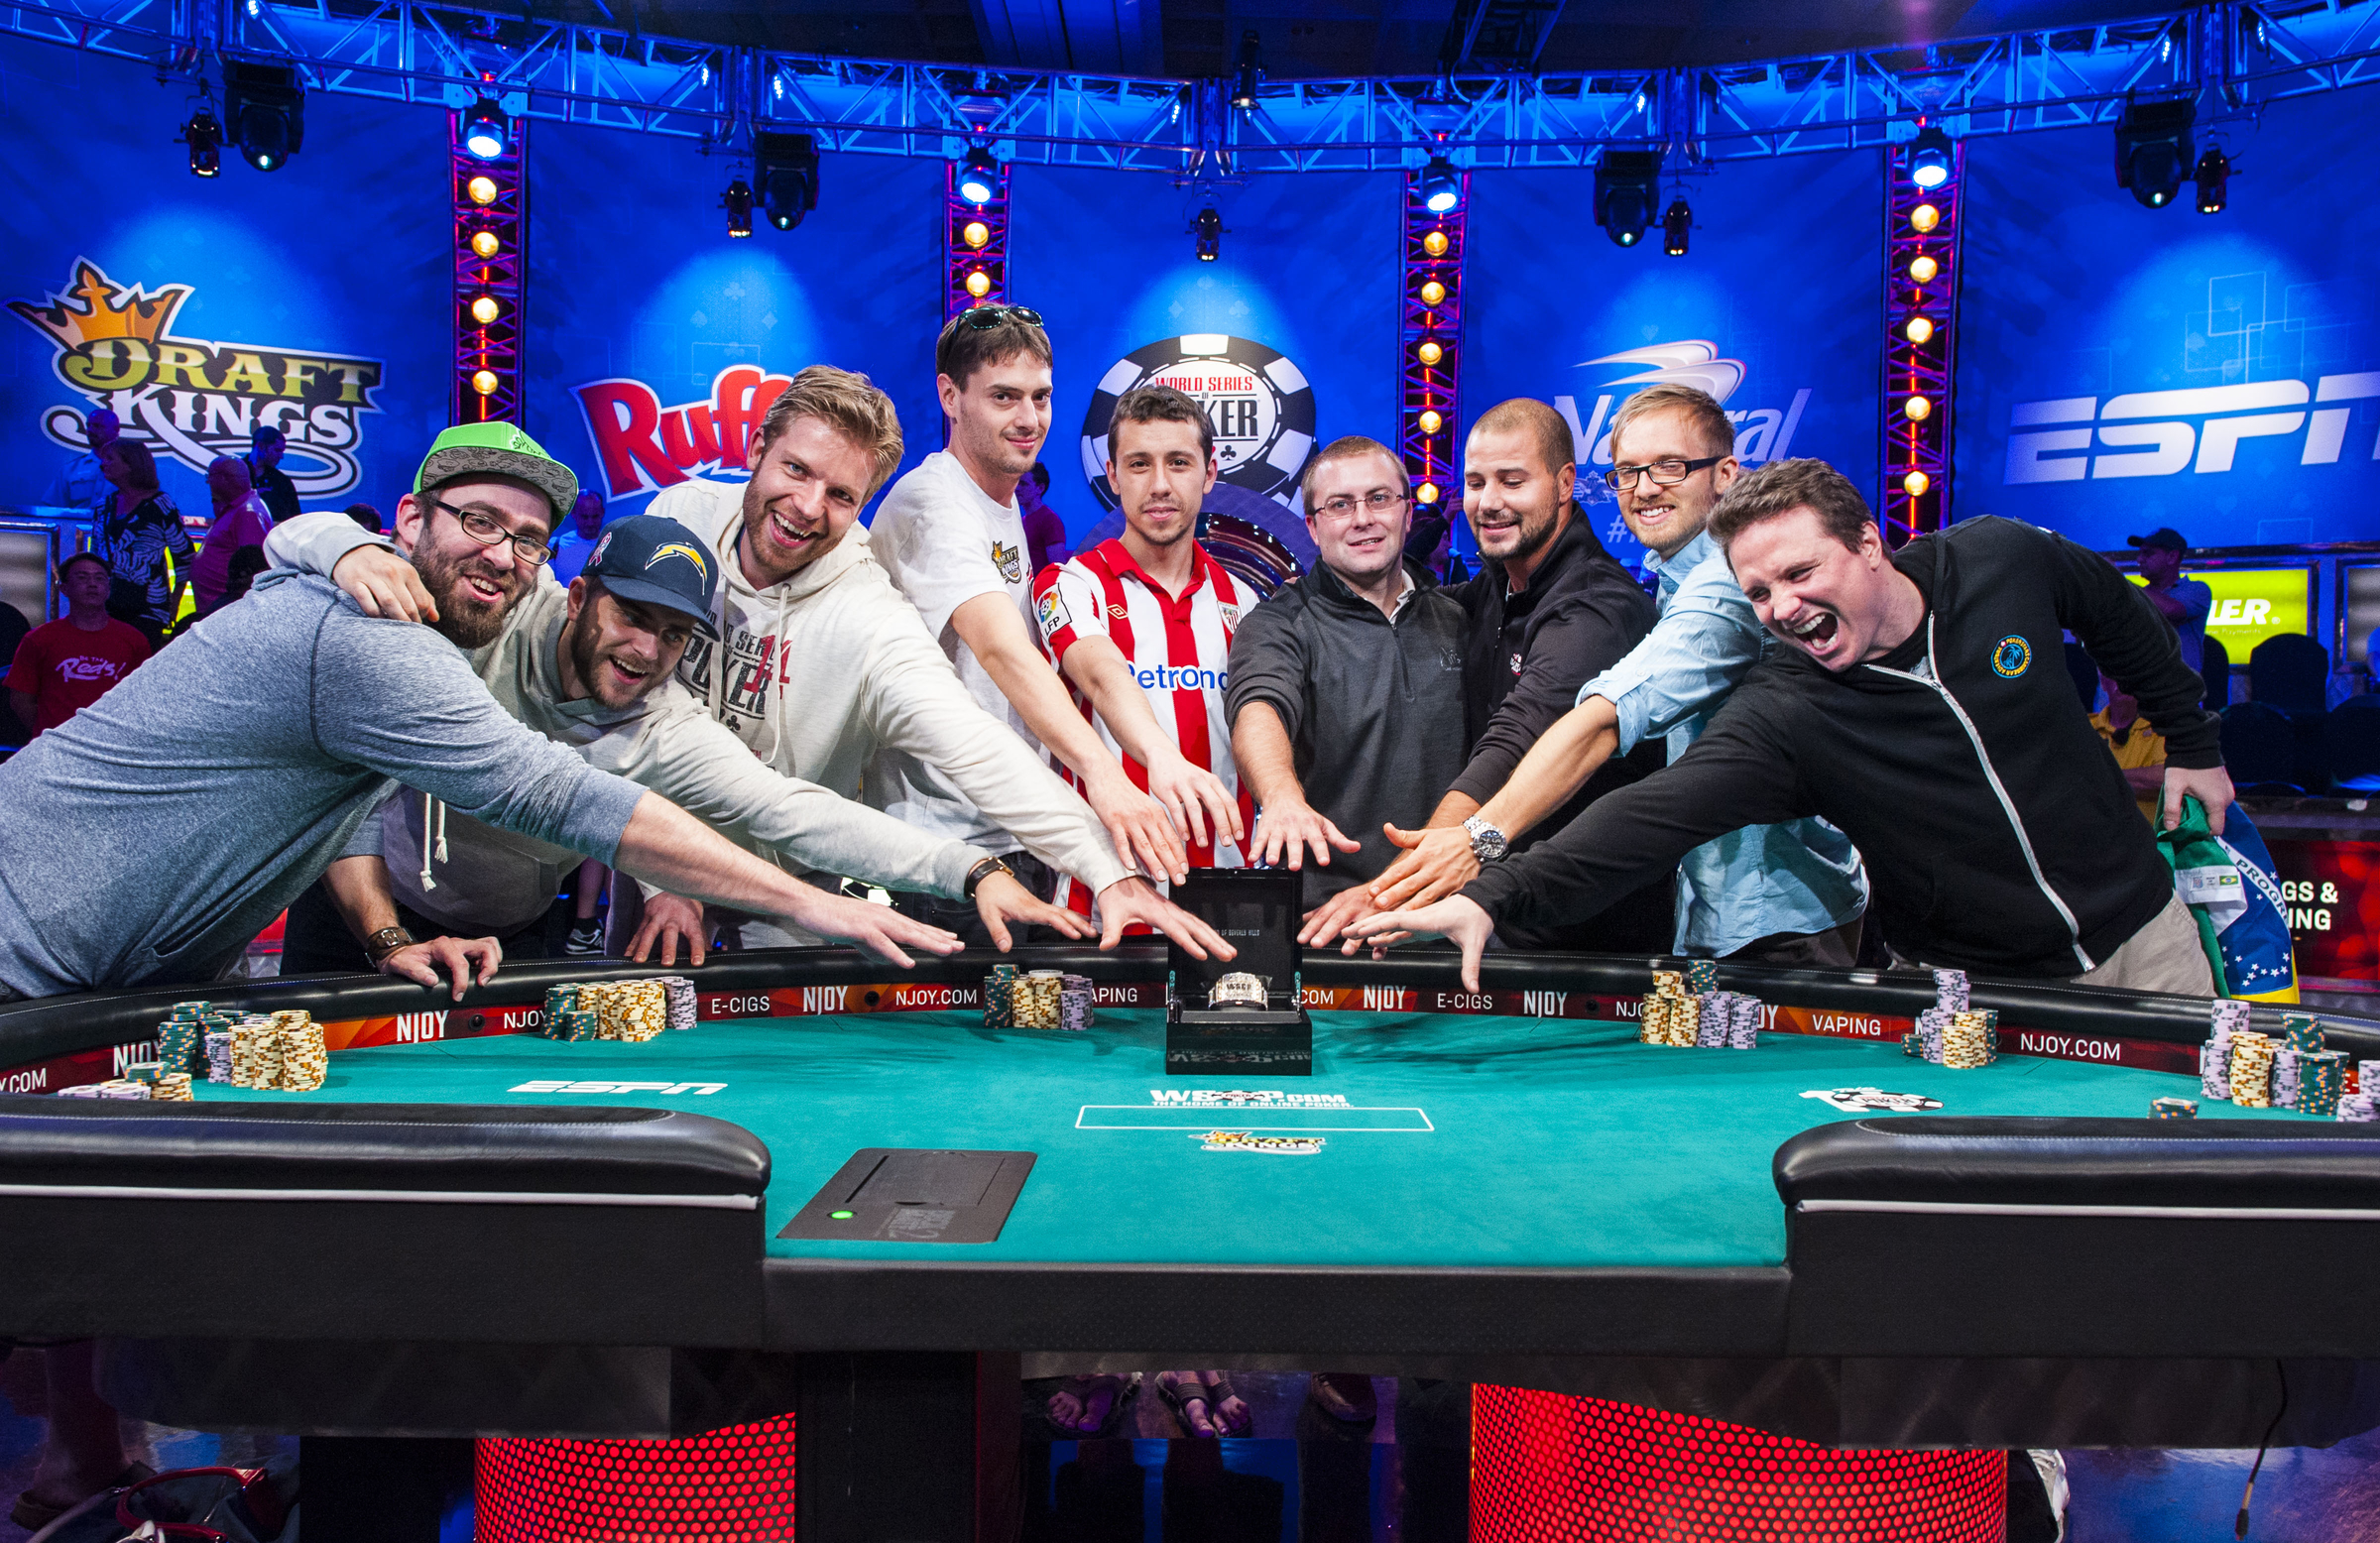 WSOP Main Event 2014: Gentlemen, place your bets